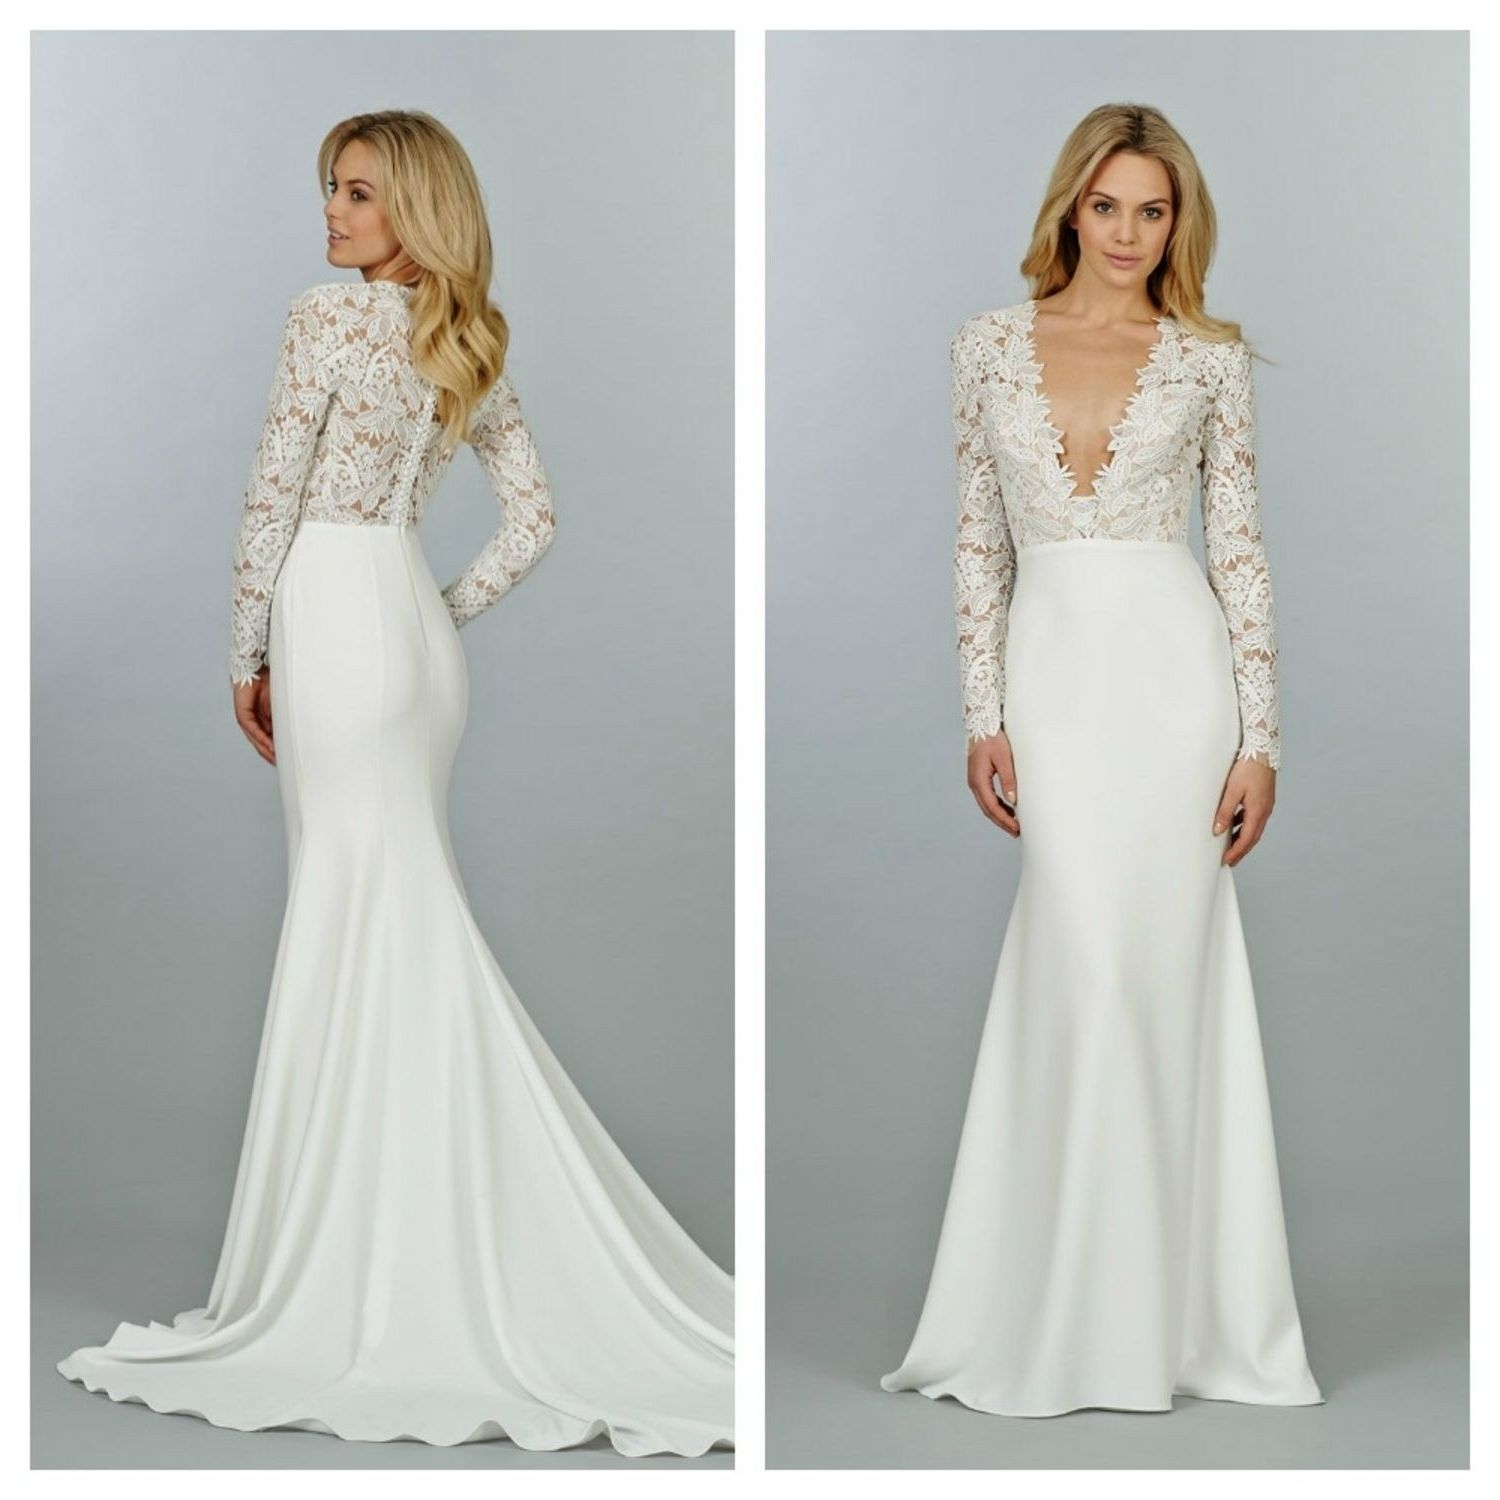 Kim Kardashian Givenchy Wedding Dress Look Alike: Kim Kardashian Wedding Dress Replica At Reisefeber.org